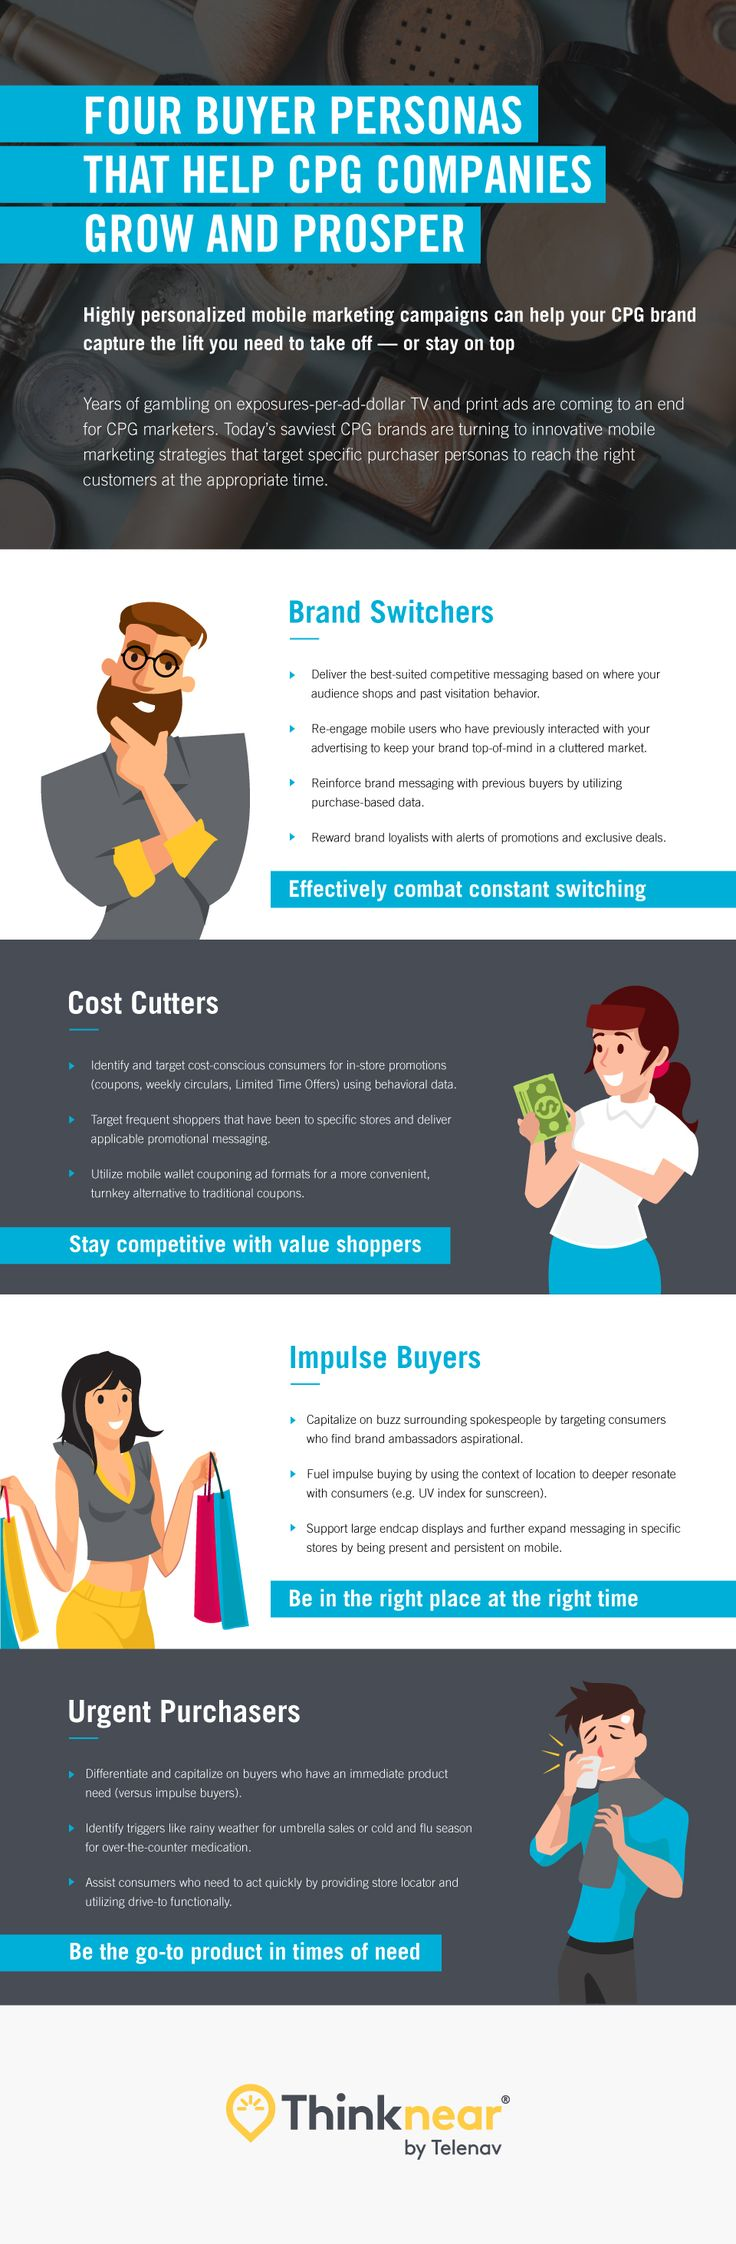 #Marketing #Infographics - The CPG market may be cluttered, and buyers are definitely fickle — but the mobile marketing space gives you the room you need to influence consumers. Location intelligence and robust data analytics can provide the who, when, and where for engaging digital experiences that keep existing customers happy and entice new ones to buy.